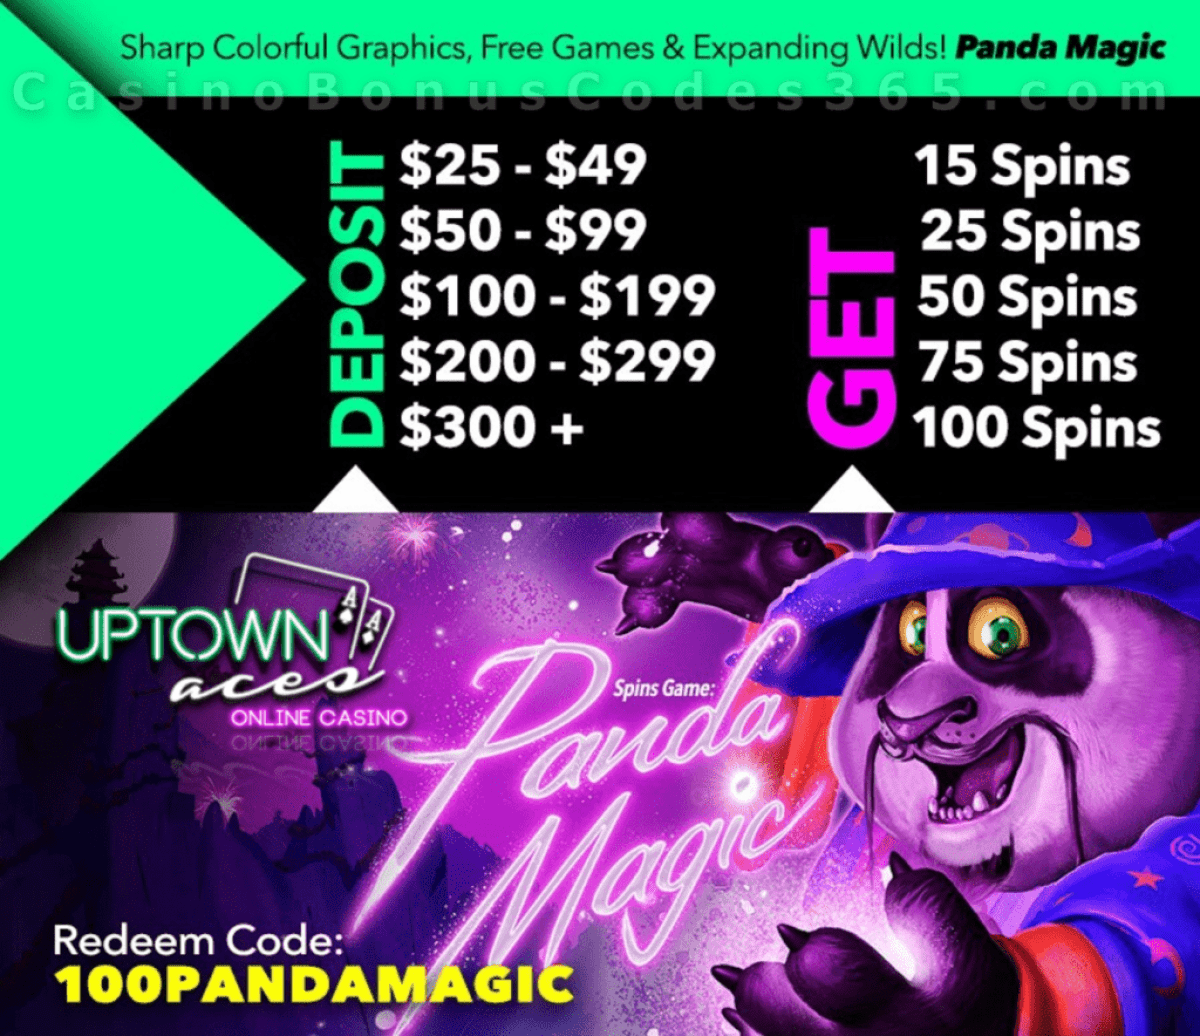 Uptown Aces Daily 100 FREE Spins on RTG Panda Magic Promo